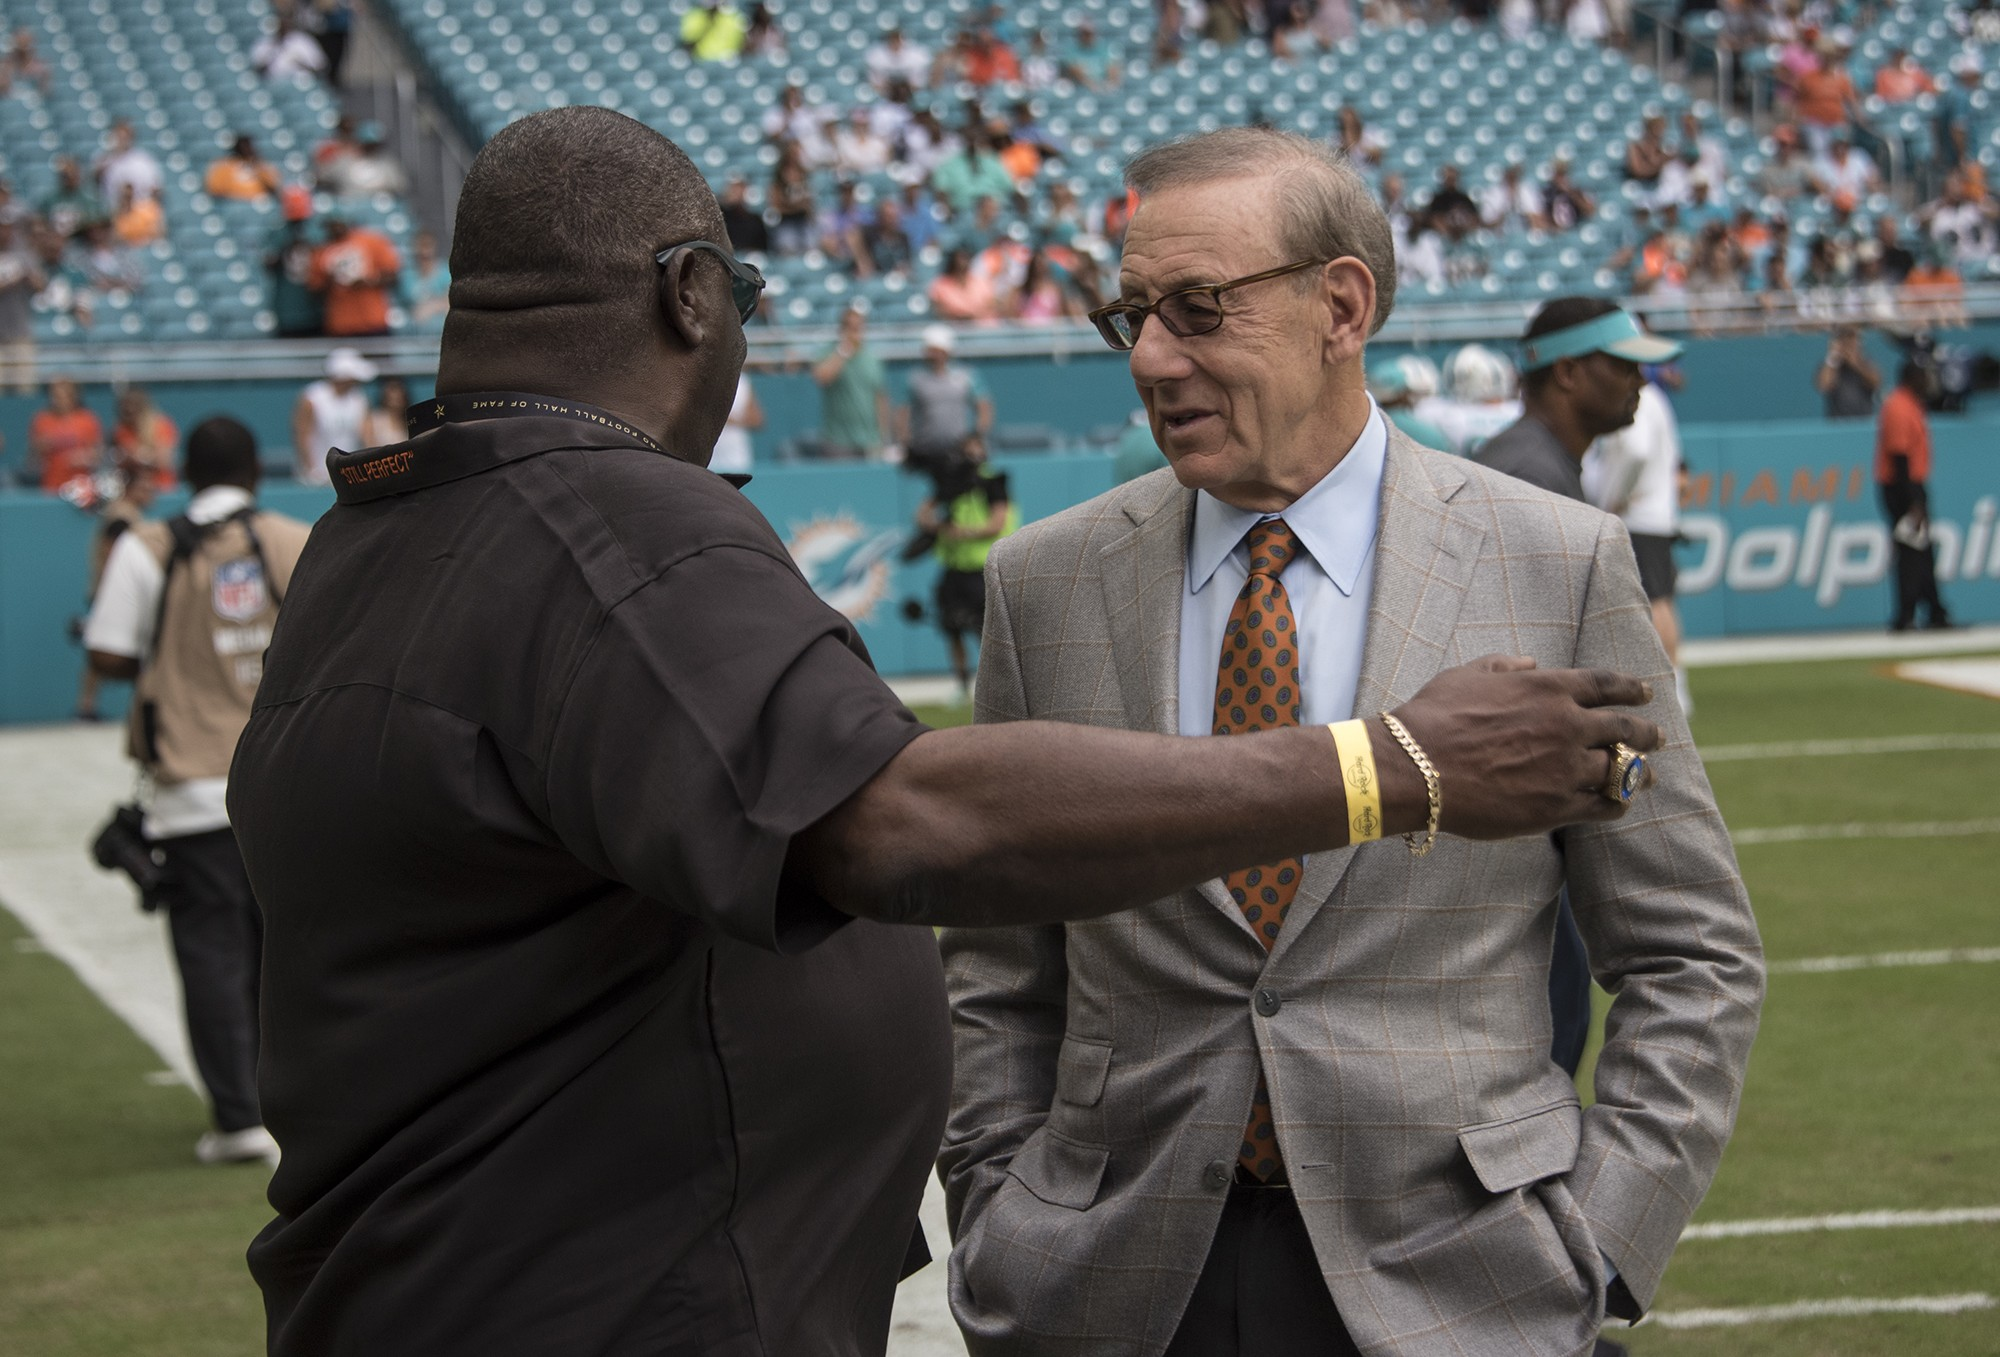 Perfect 72 team member Larry Little talks with Miami Dolphins owner Stephen Ross prior to an NFL football game on Sunday, Oct. 22, 2017, in Miami Gardens, Fla. (Donald Edgar/El Latino Digital)